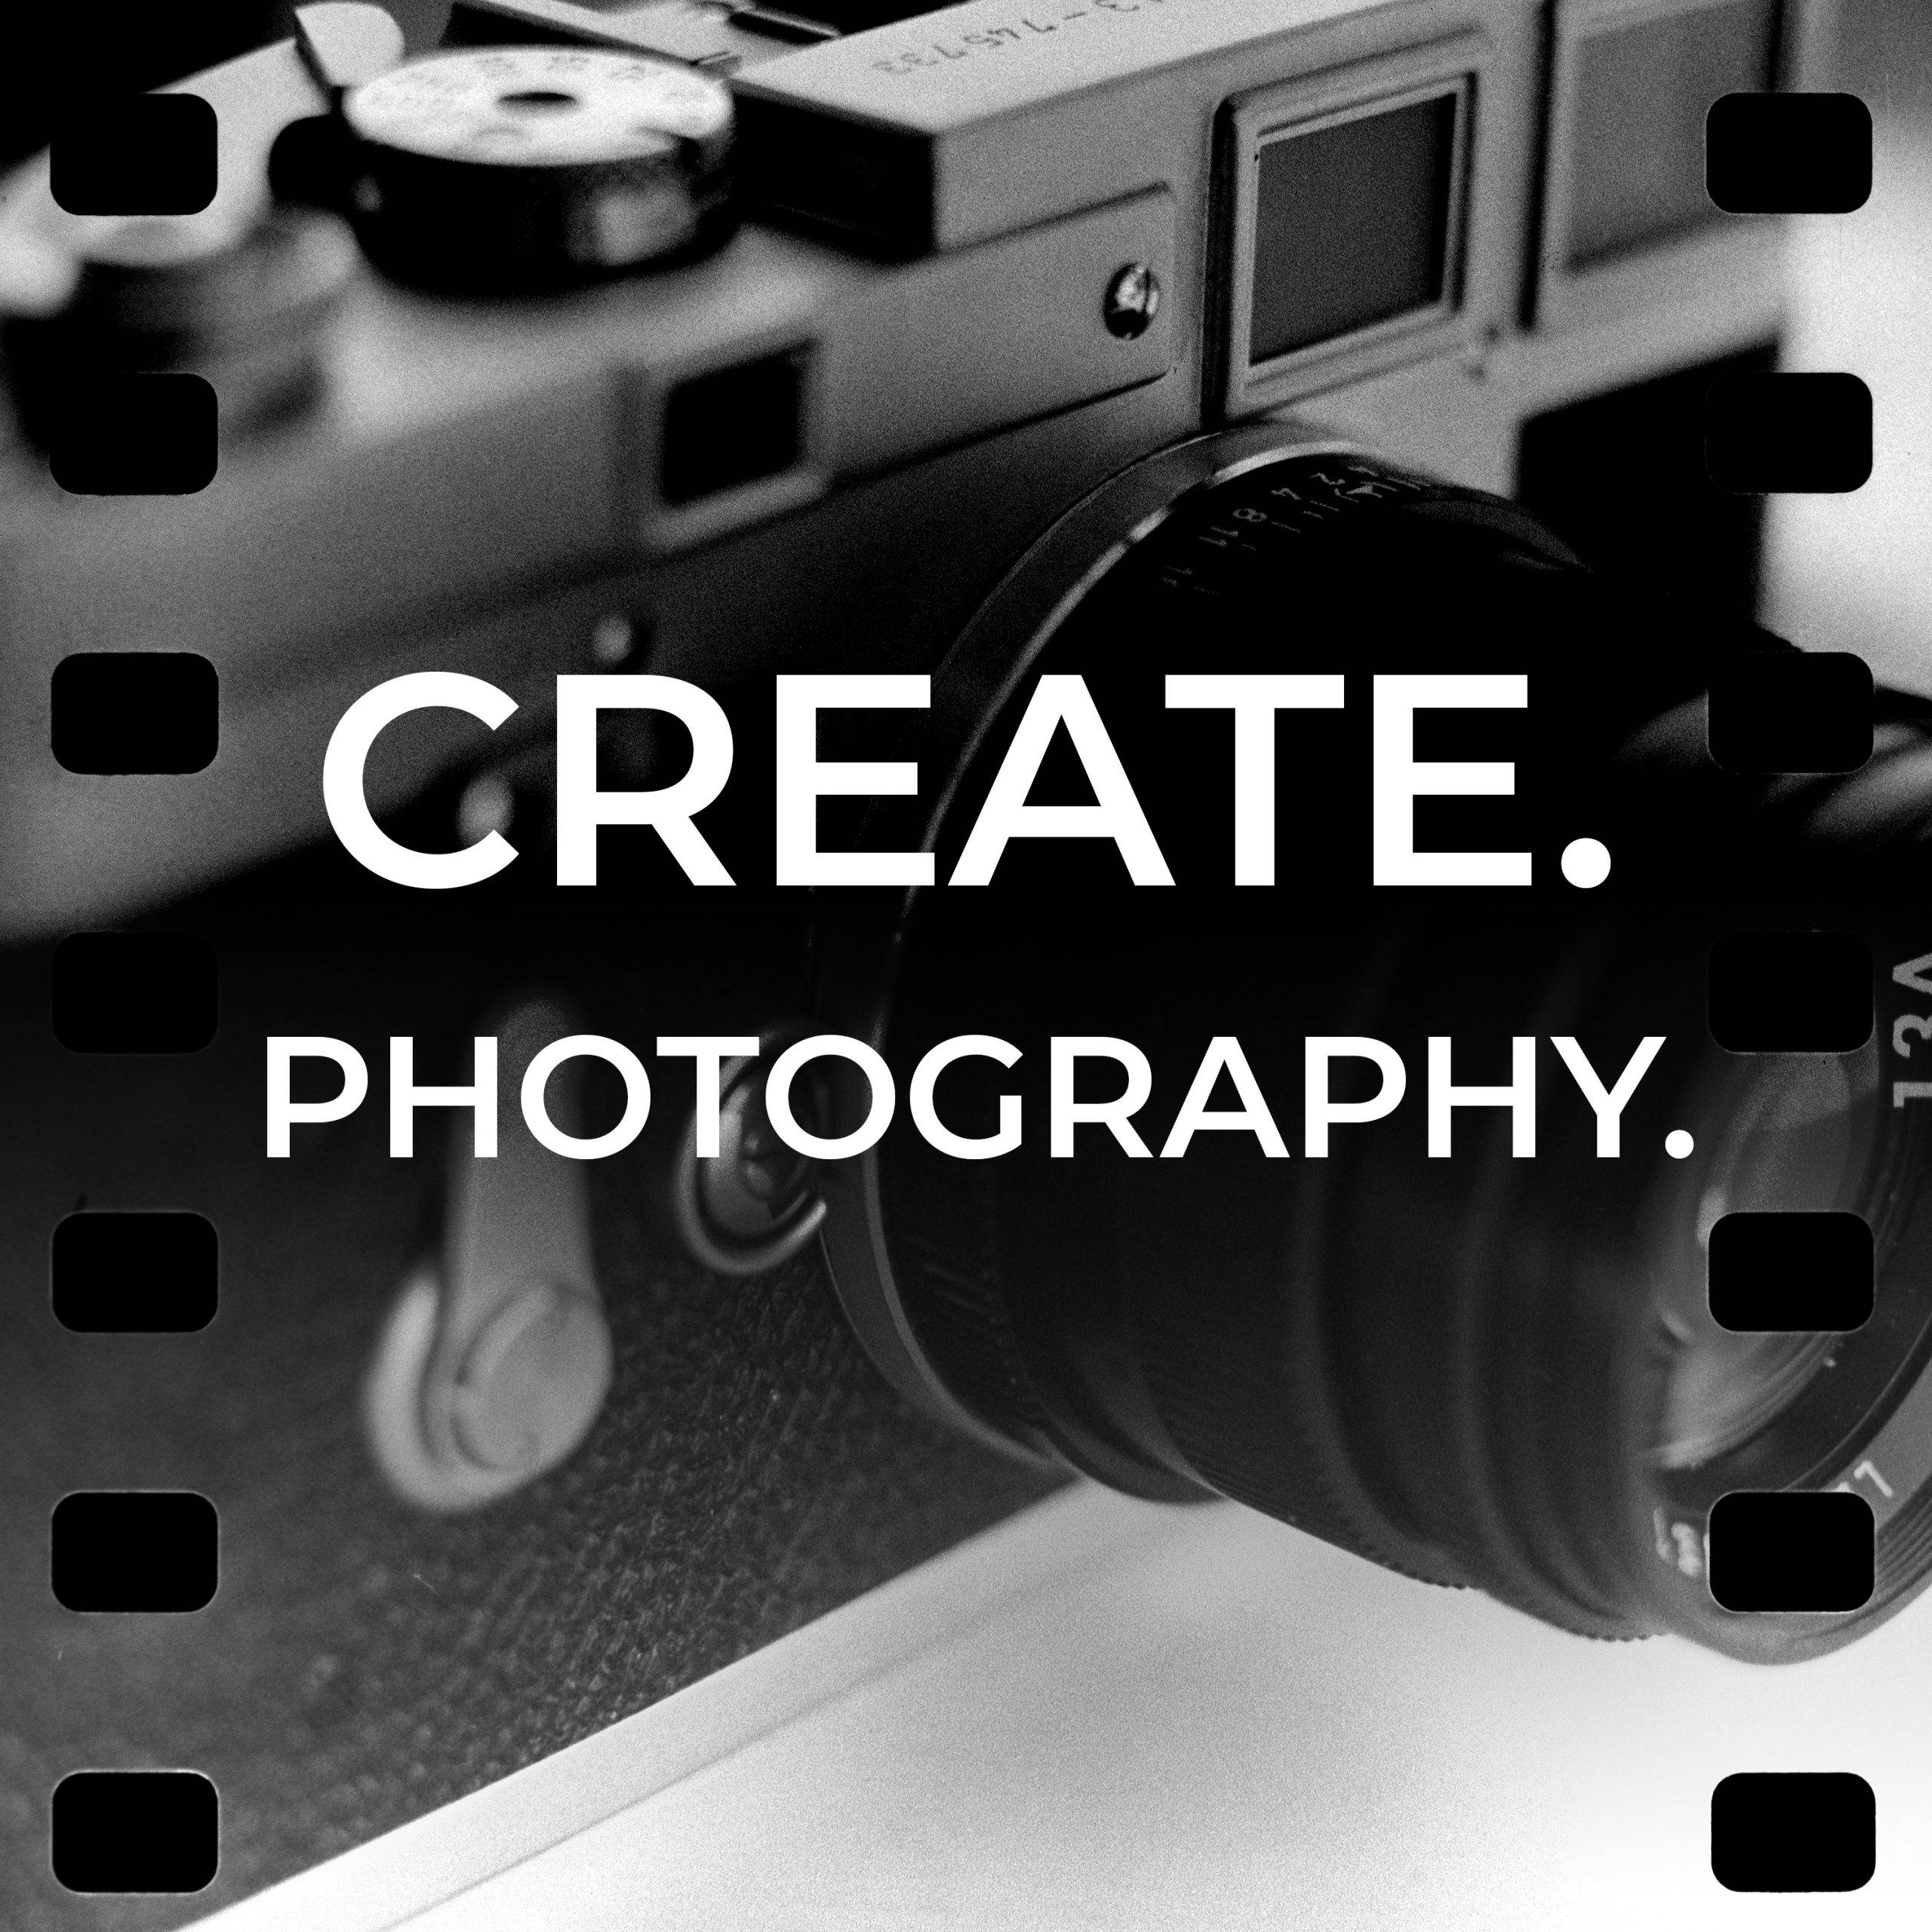 Create. Photography. Podcast by Daniel Sigg - about the creative side of photography and making images (not gear)